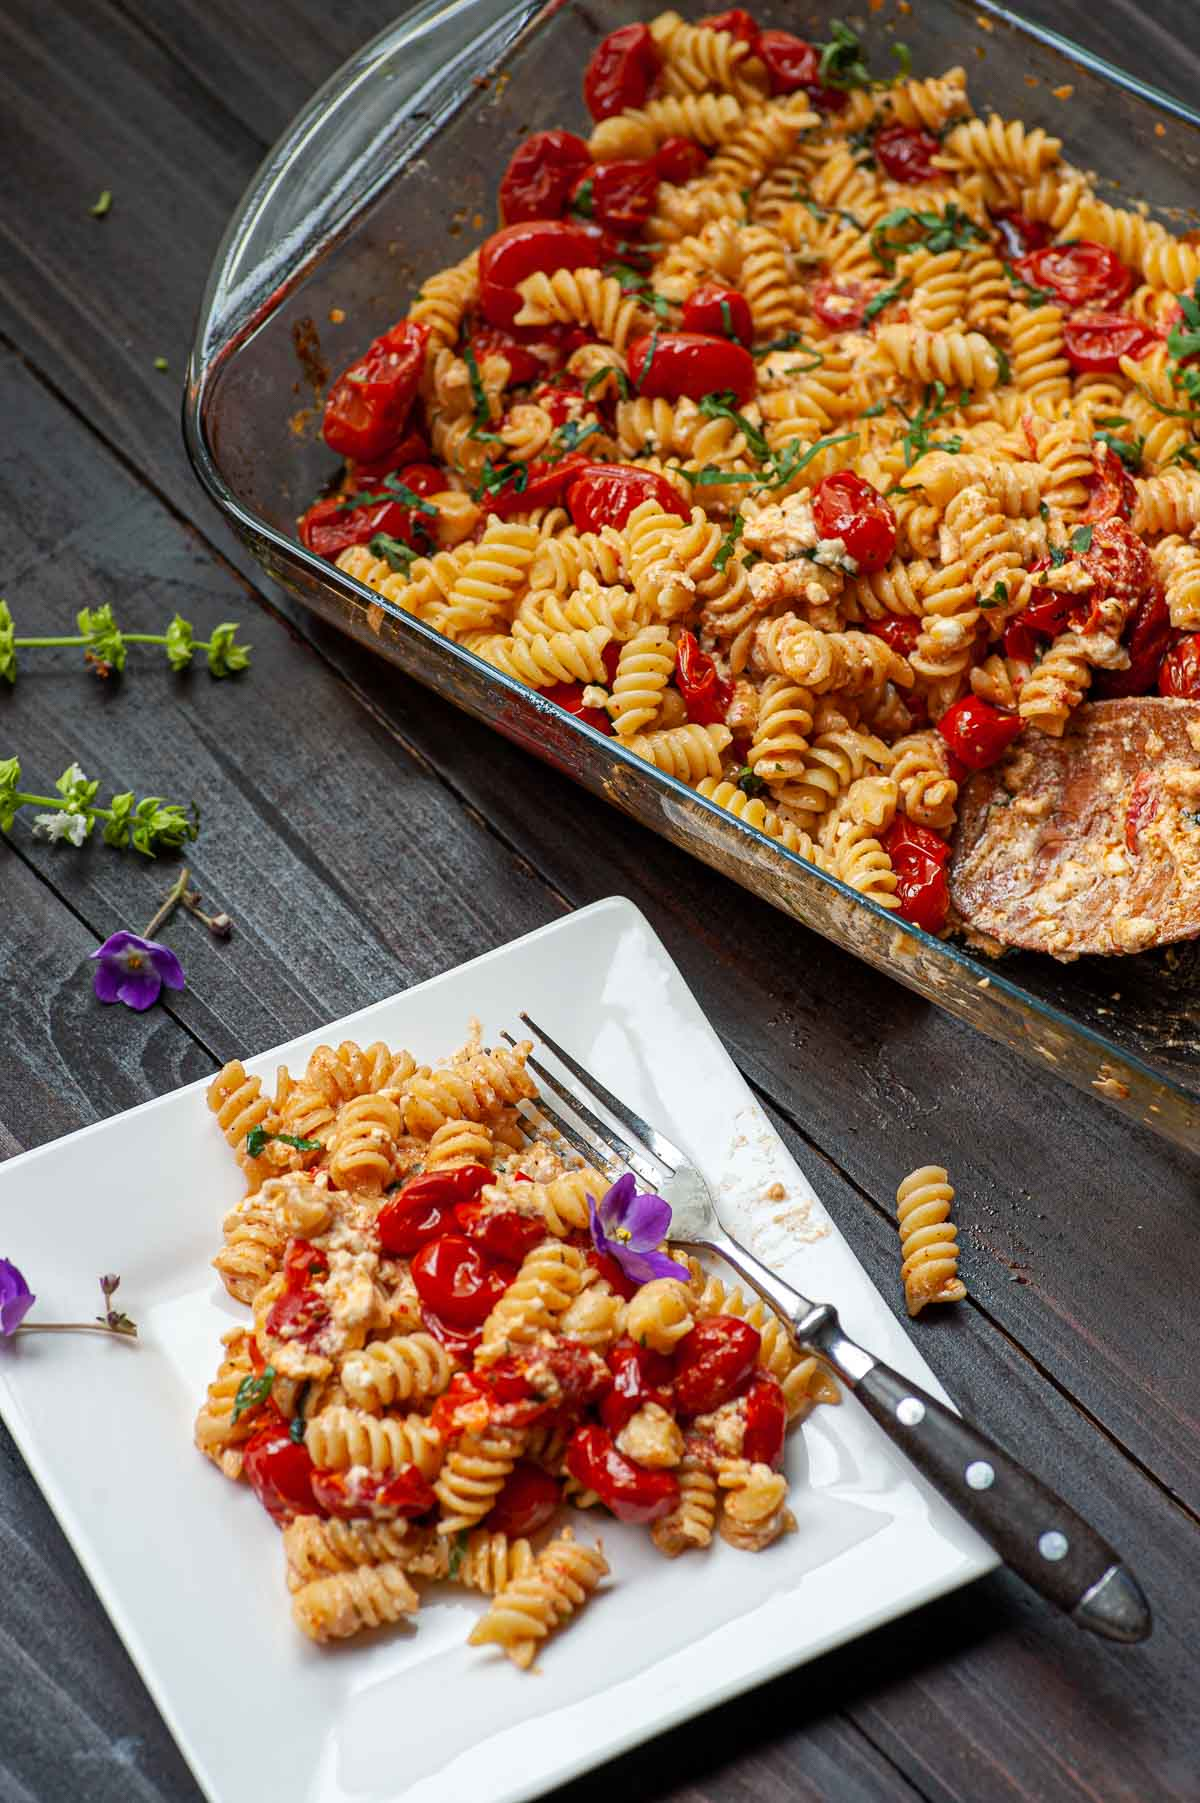 A plate of the pasta next to the casserole.